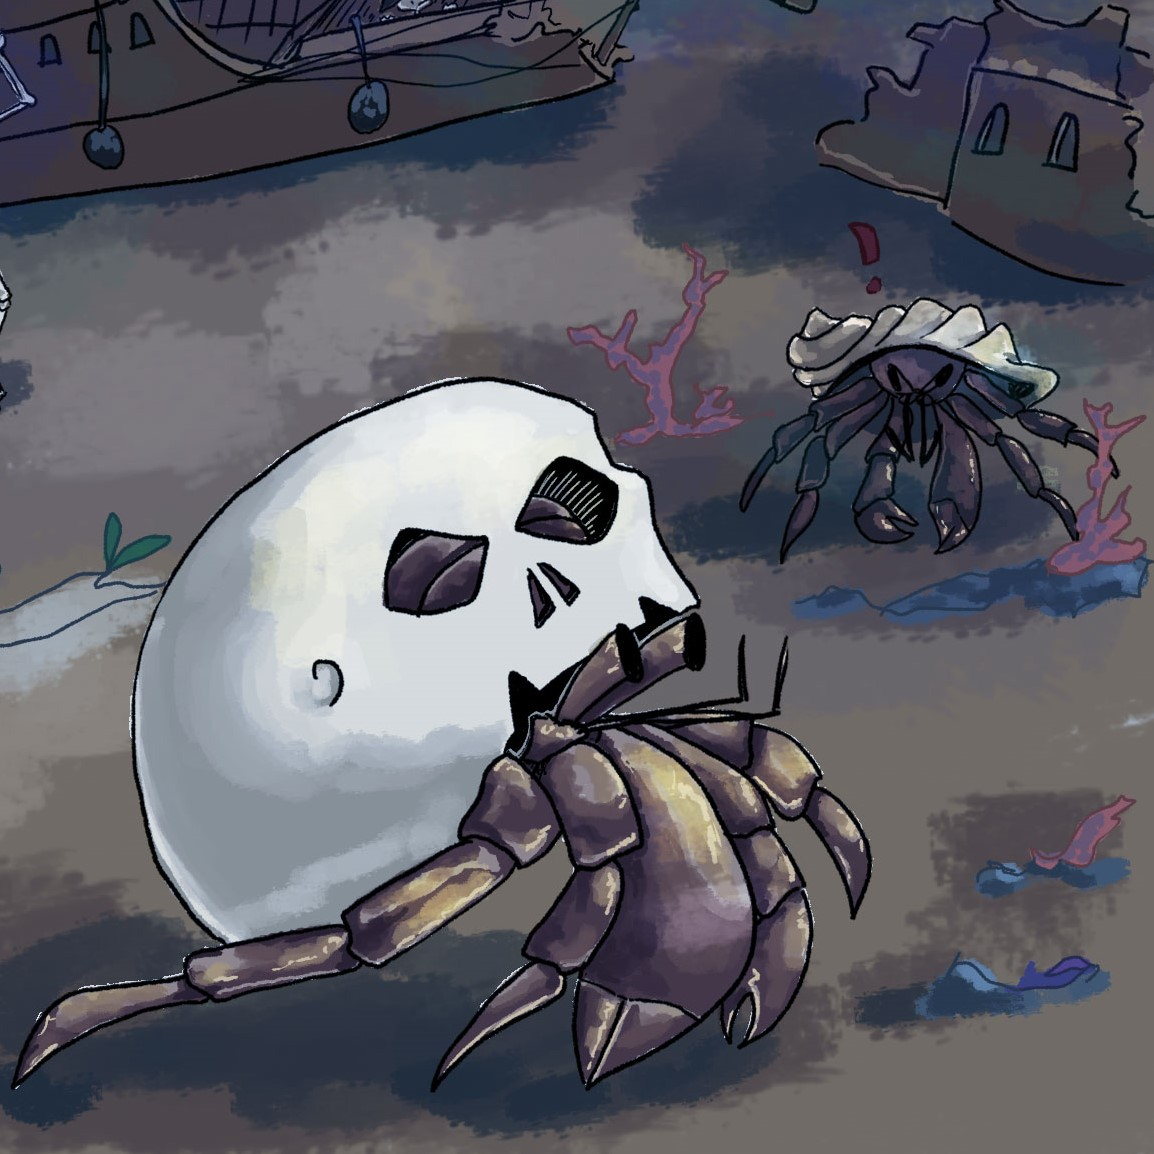 A crab wearing a skull as a shell is watched closely by another crab